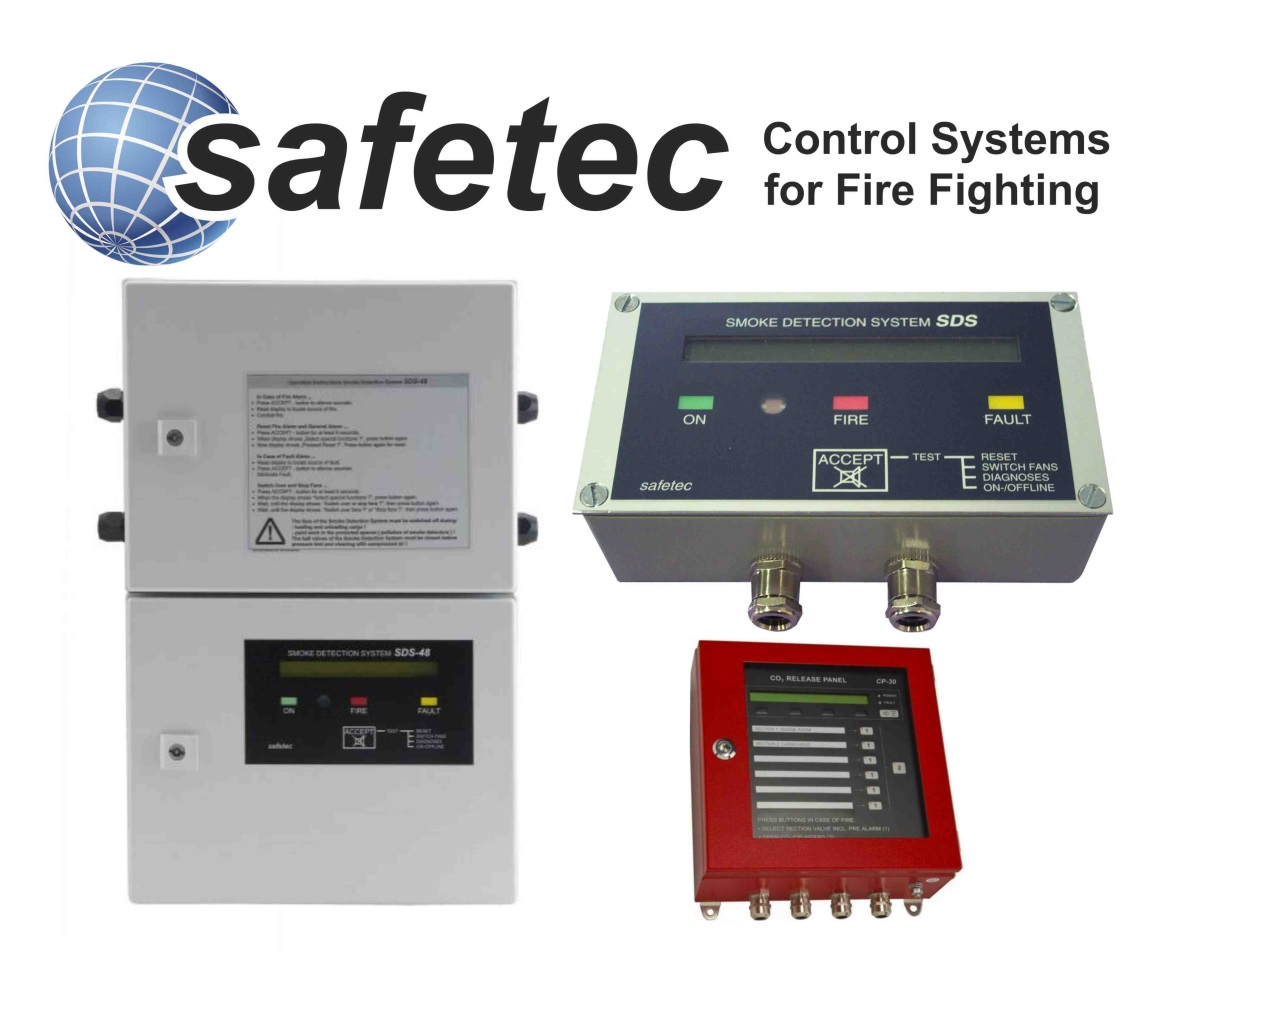 SAFETEC FIRE FIGHTING